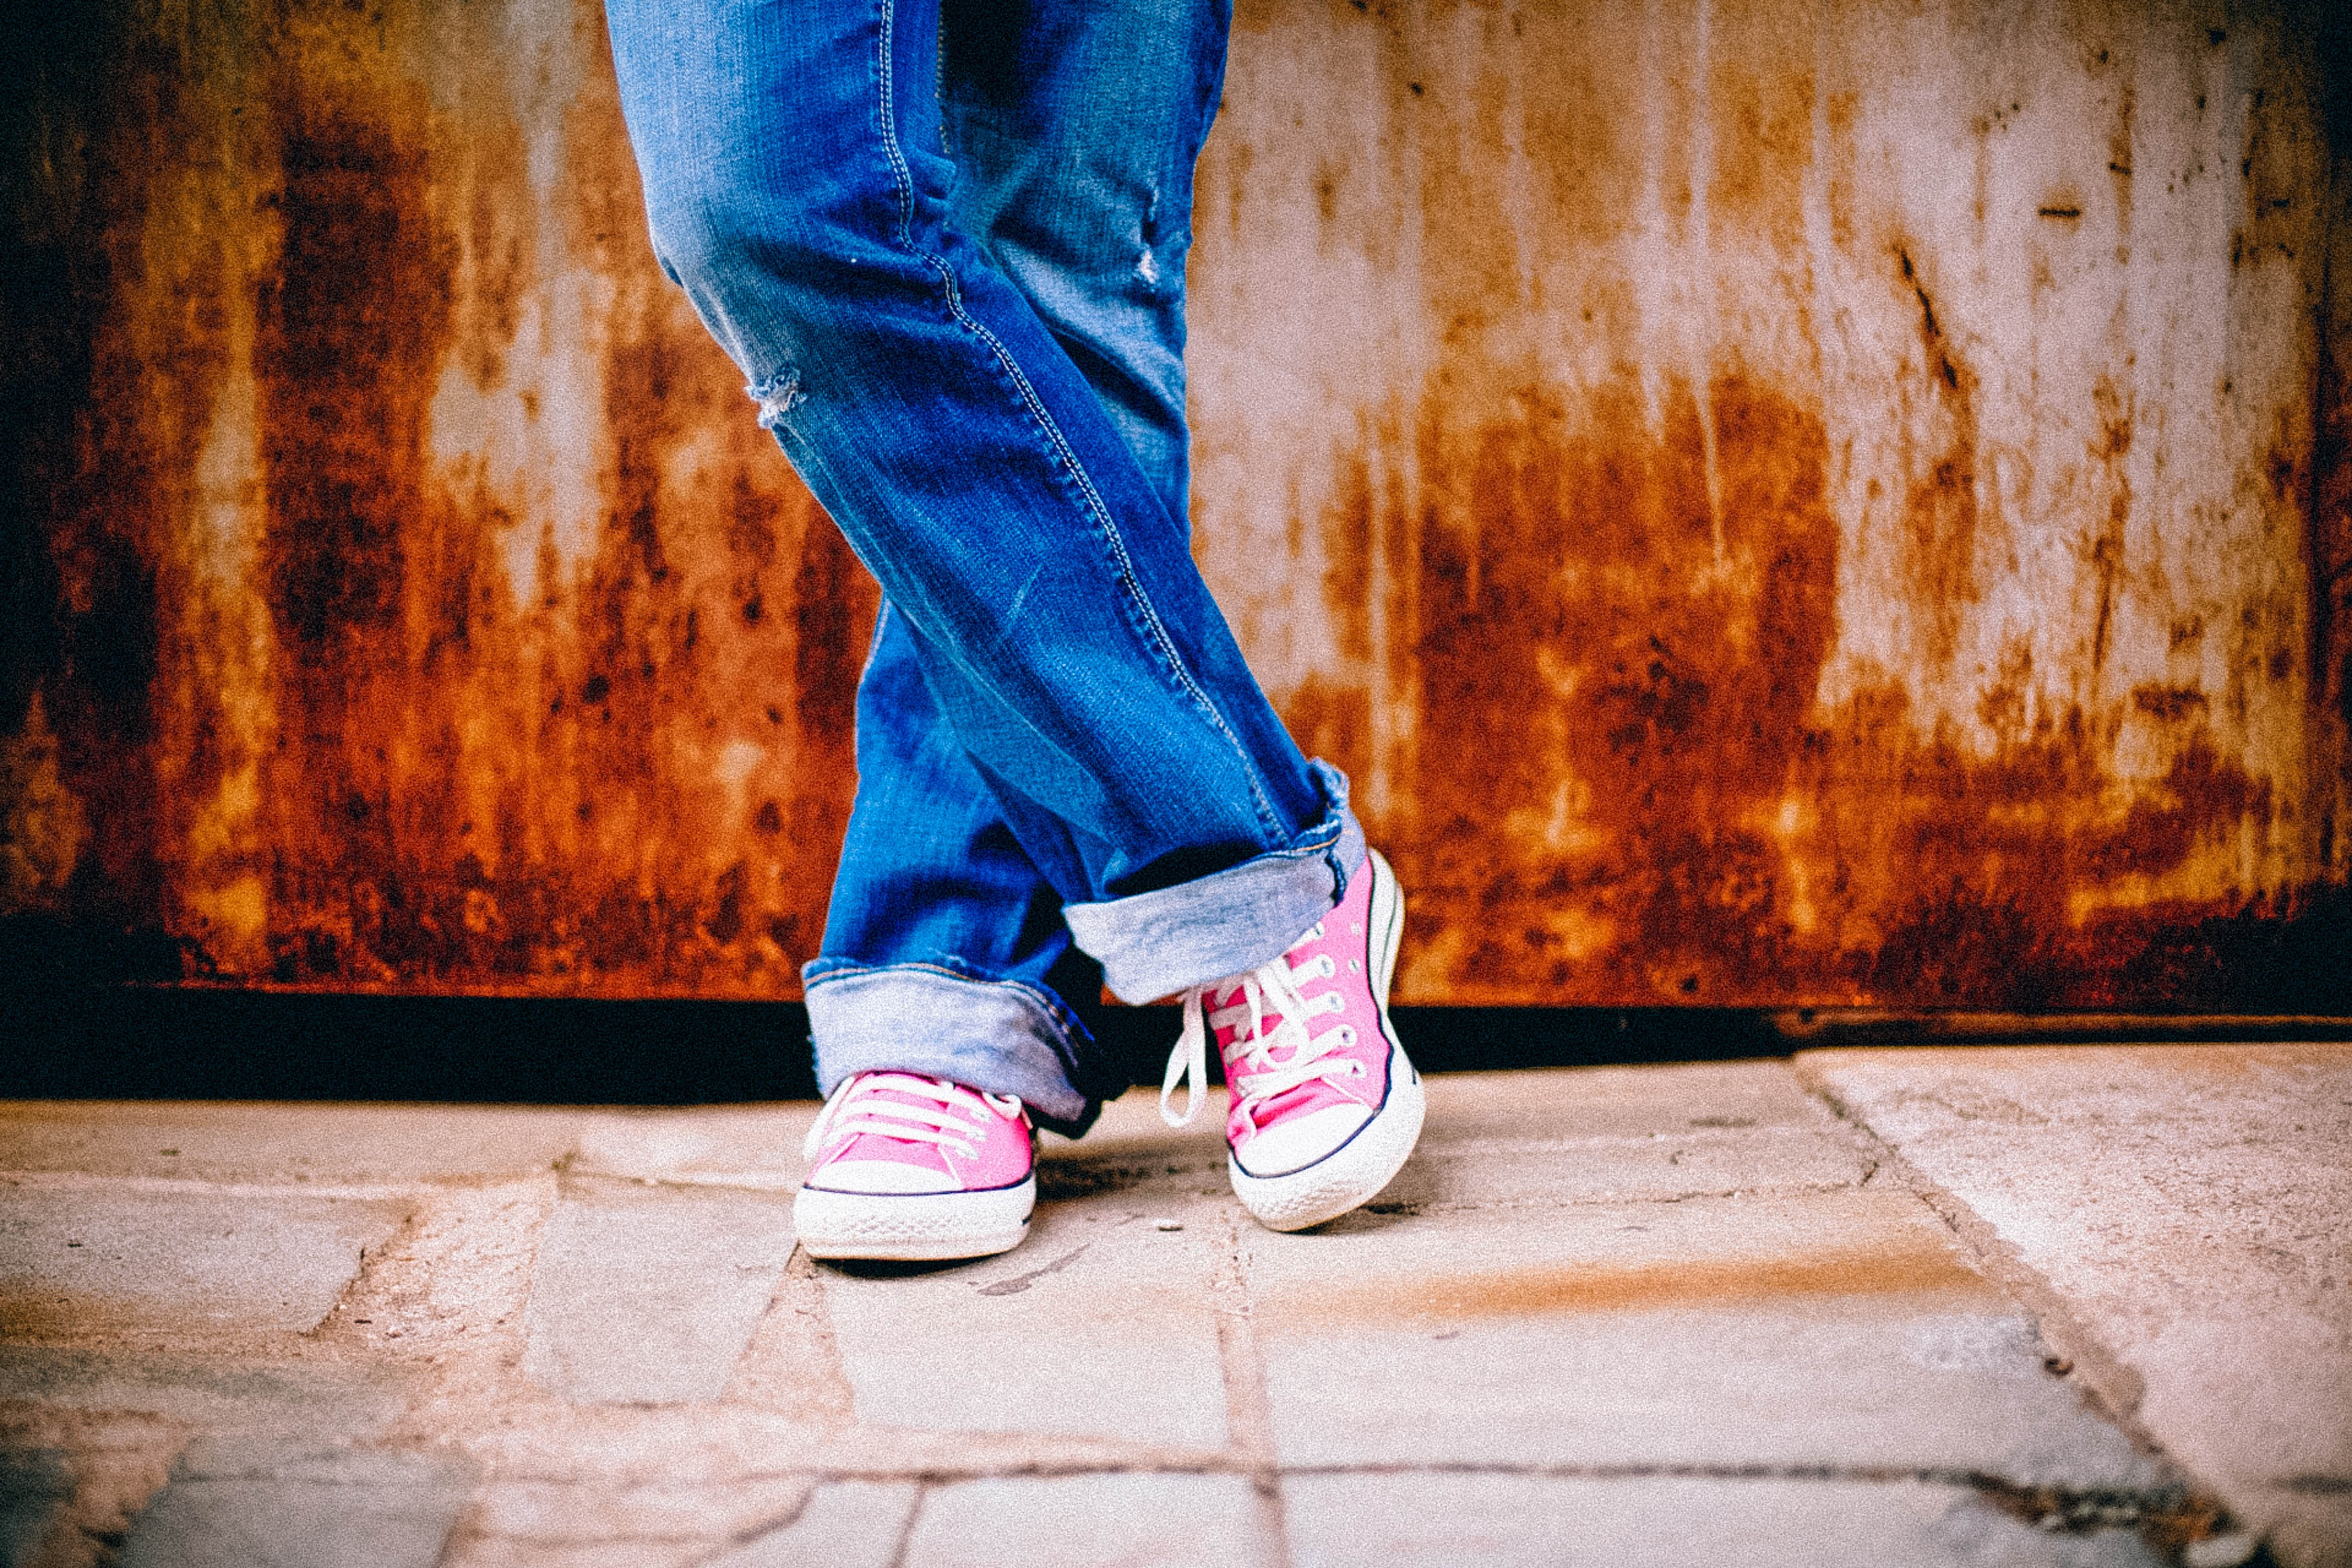 Converse Shirt Size Chart: Person in Blue Jeans and Pink White Converse All Star Sneakers ,Chart